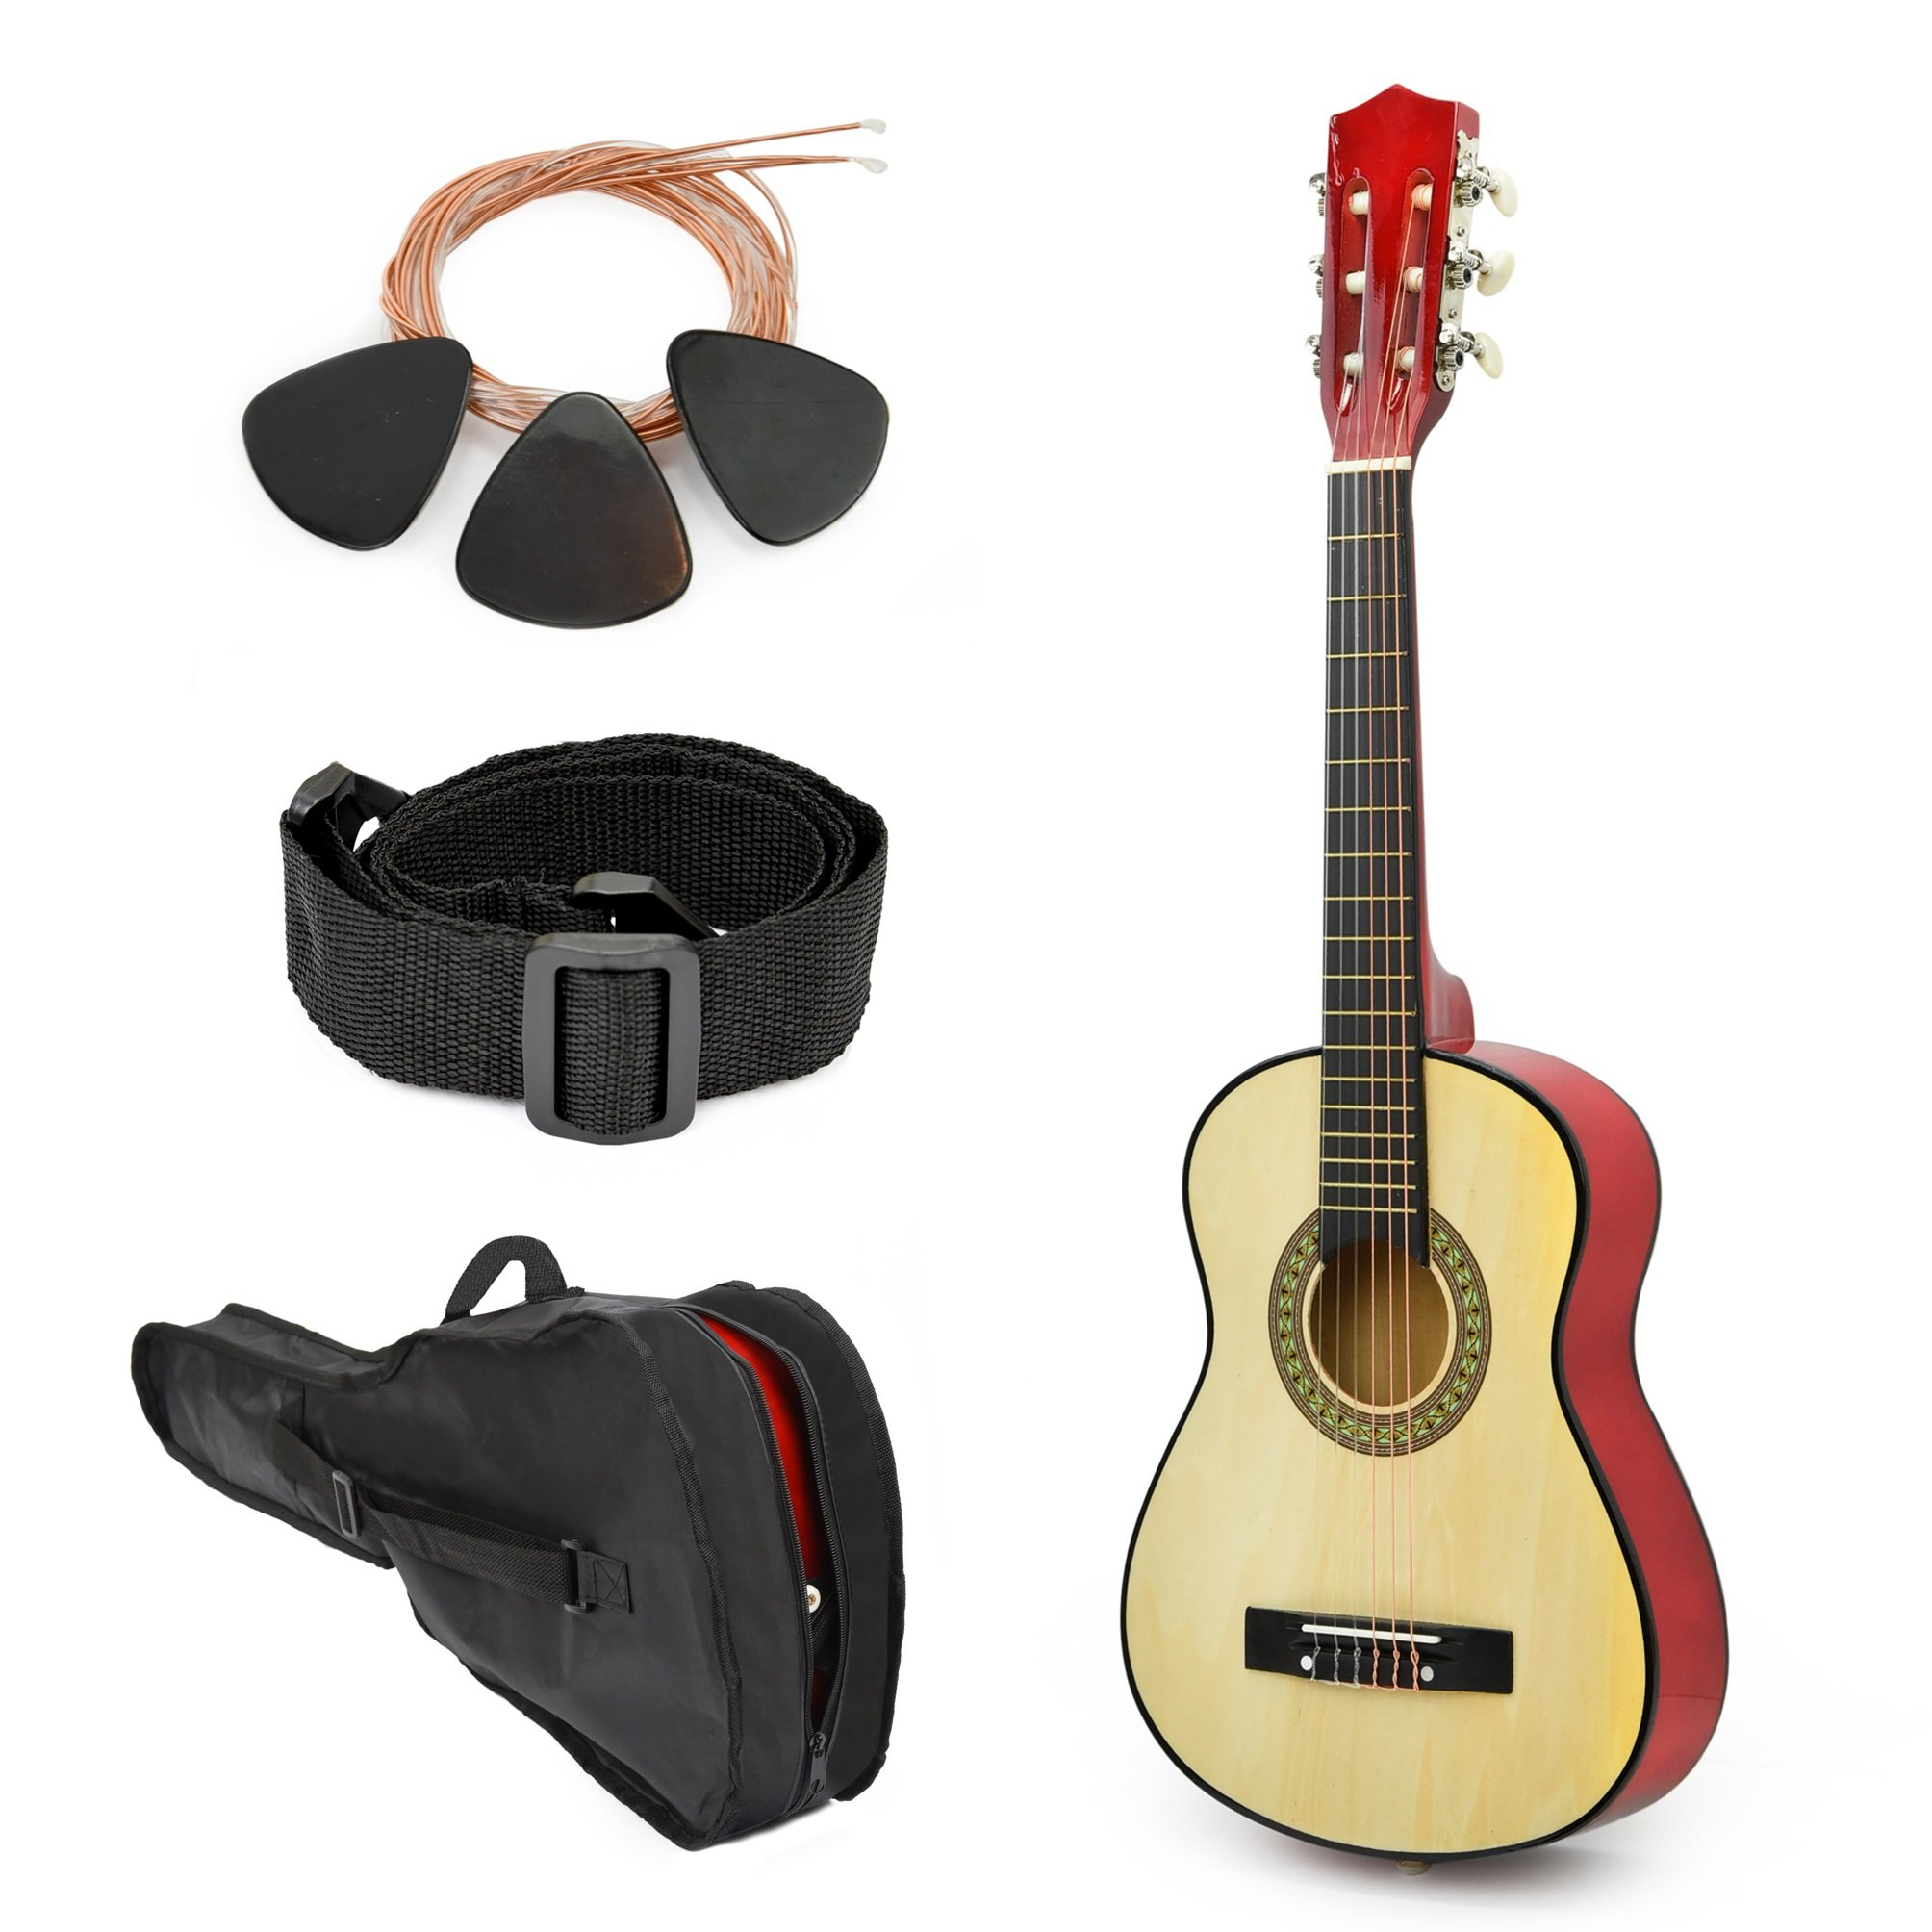 NEW! 30'' Left Handed Natural Wood Guitar With Case and Accessories for Kids/Boys/Beginners by Master Play